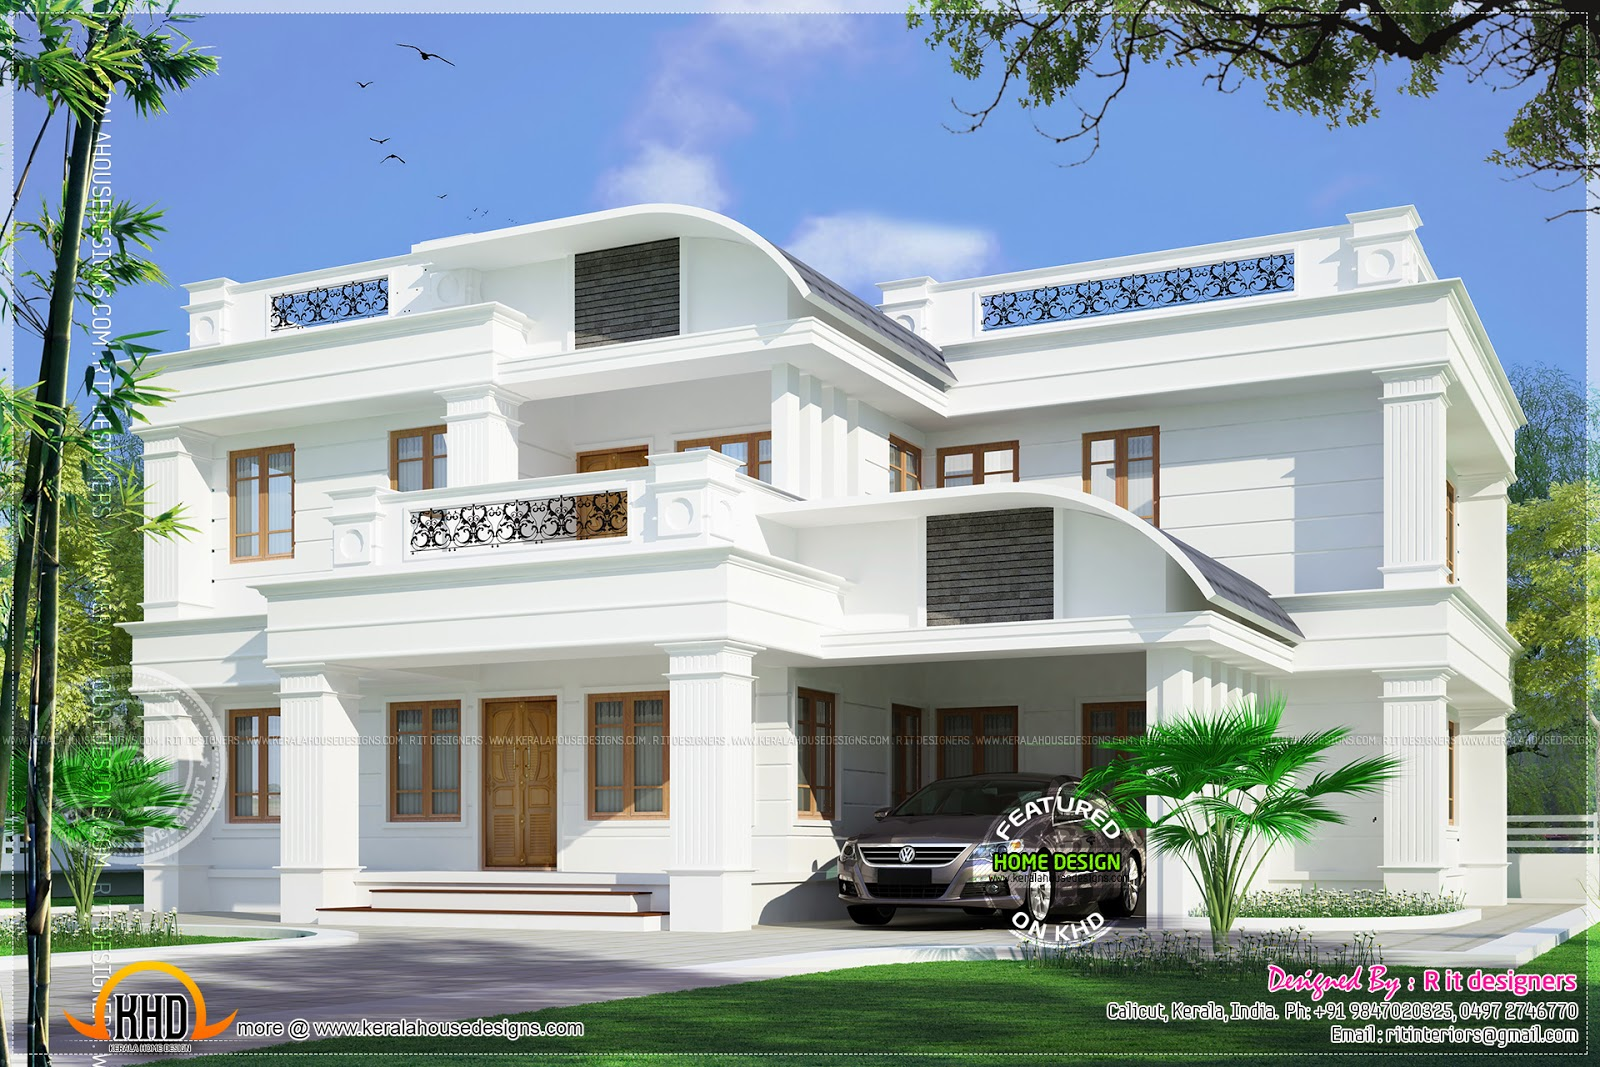 Residence at kannur kerala home design and floor plans